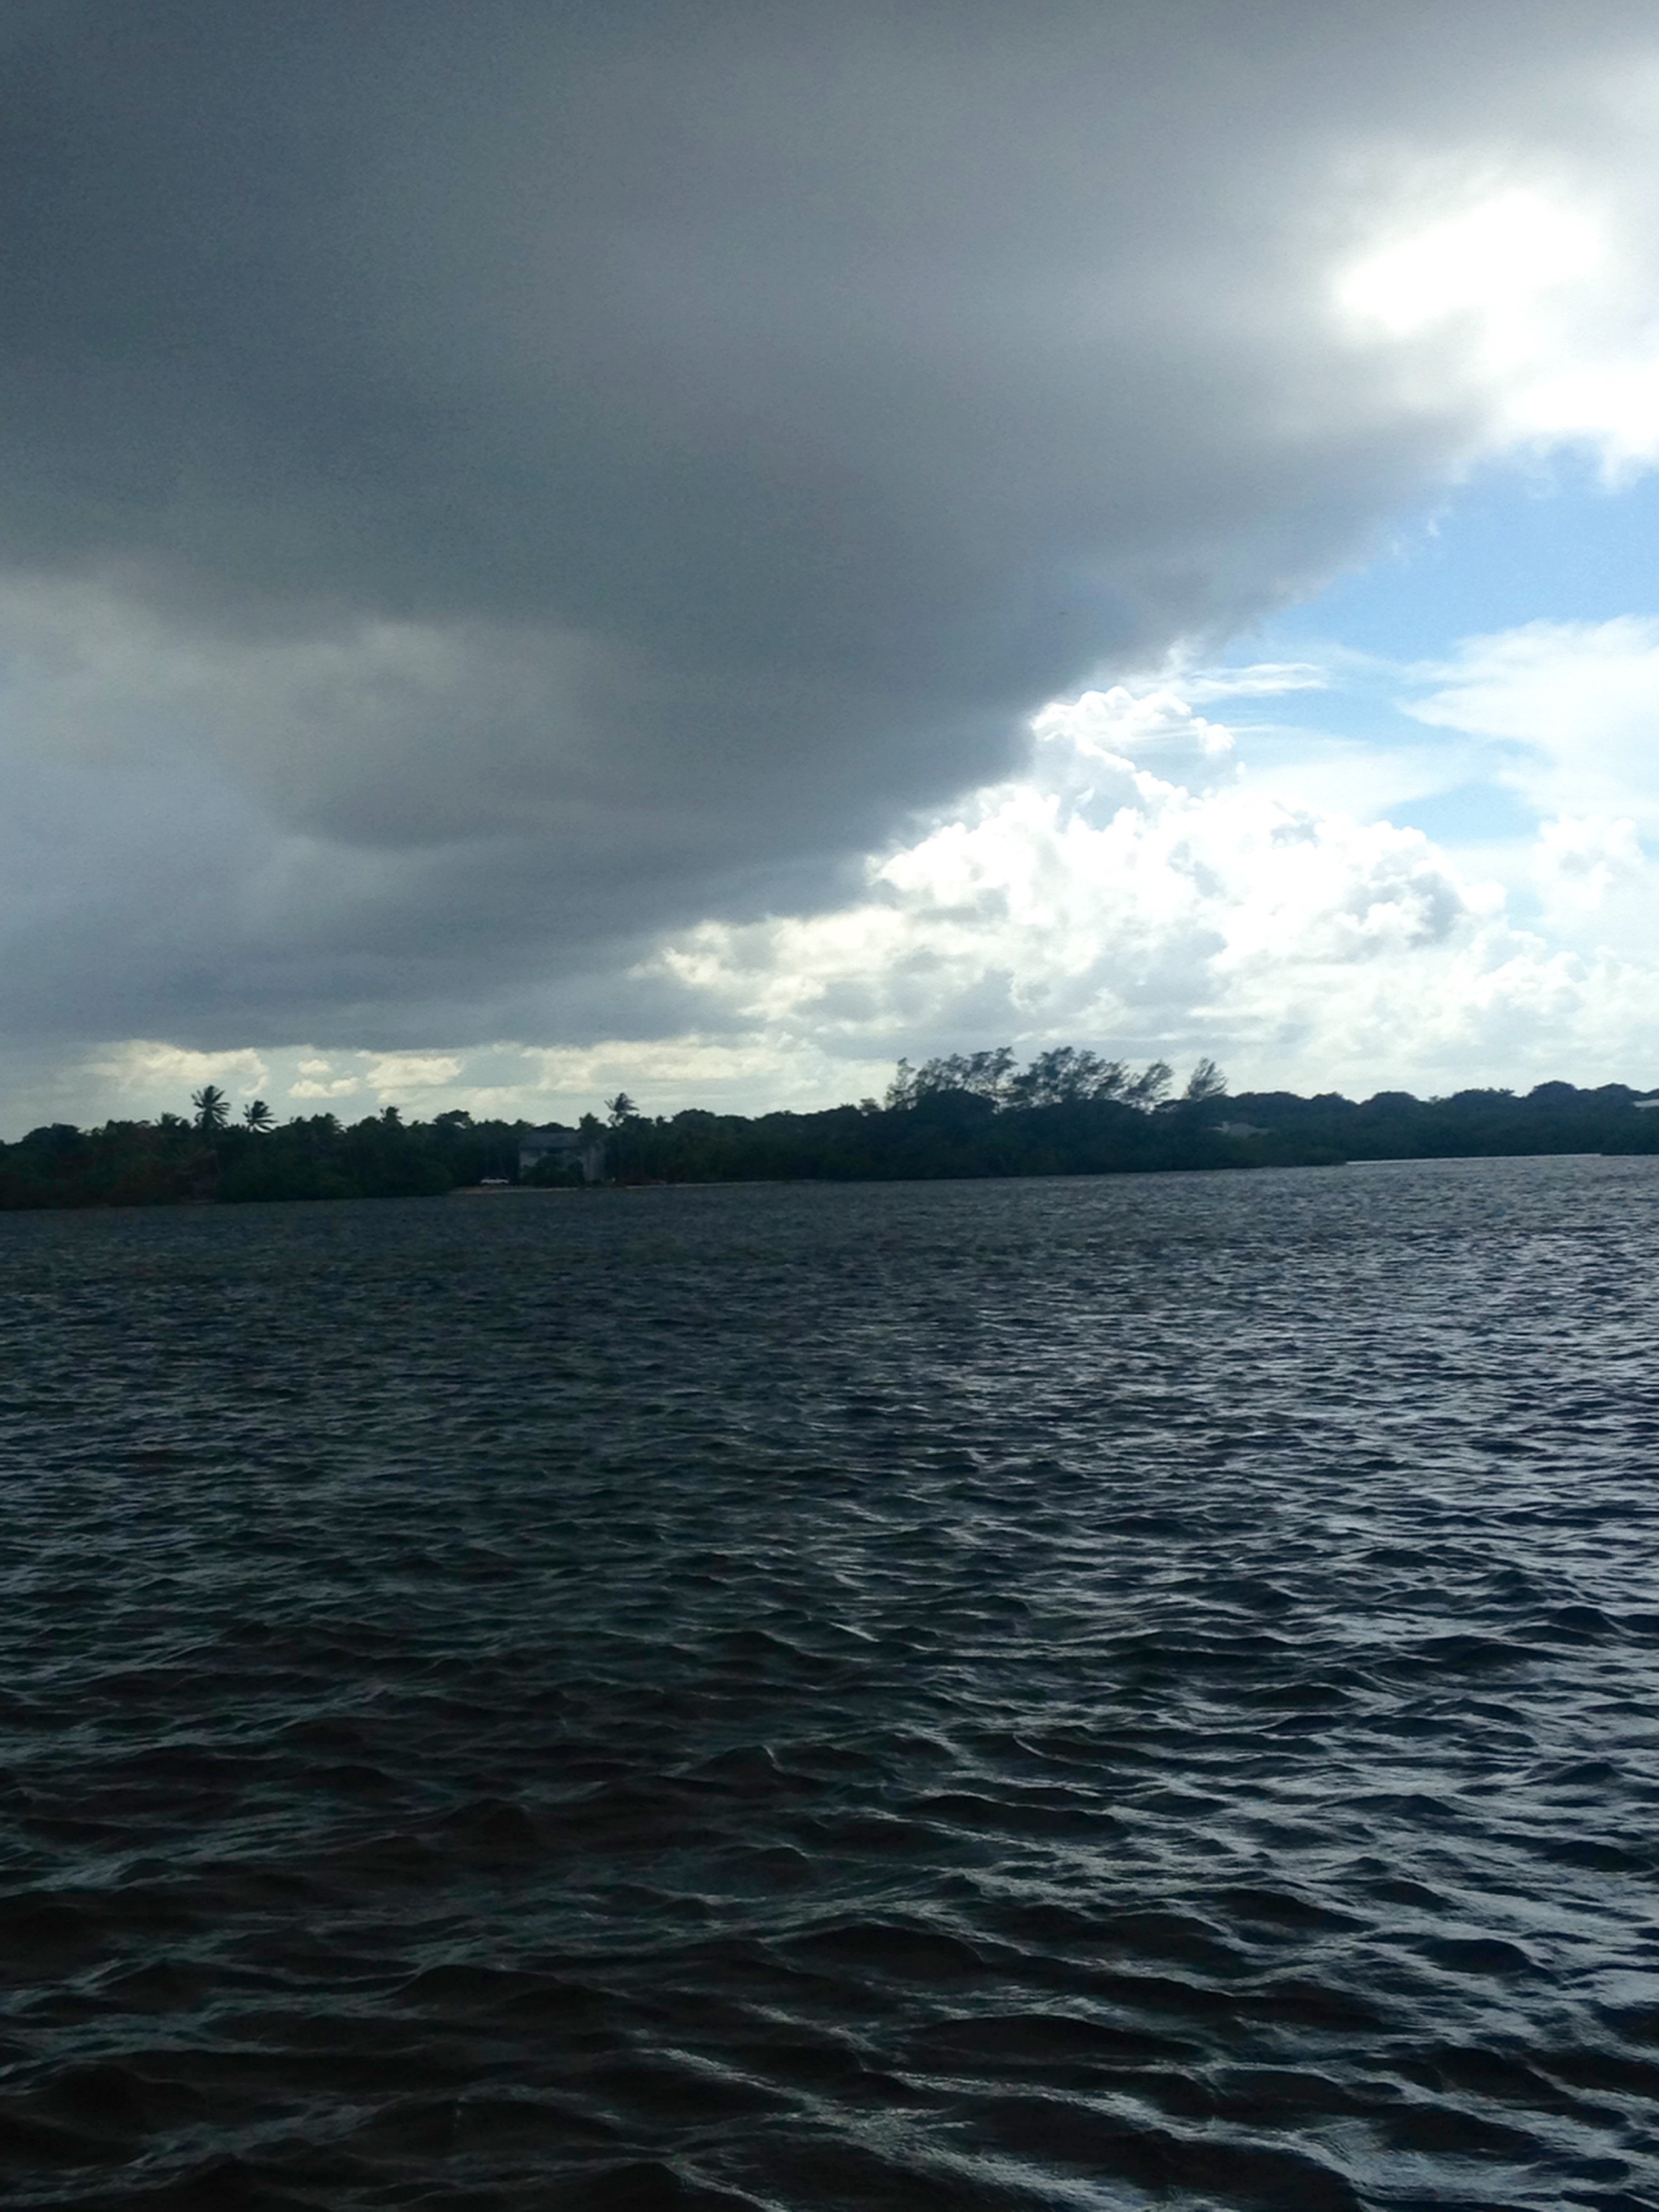 Storm on the water.